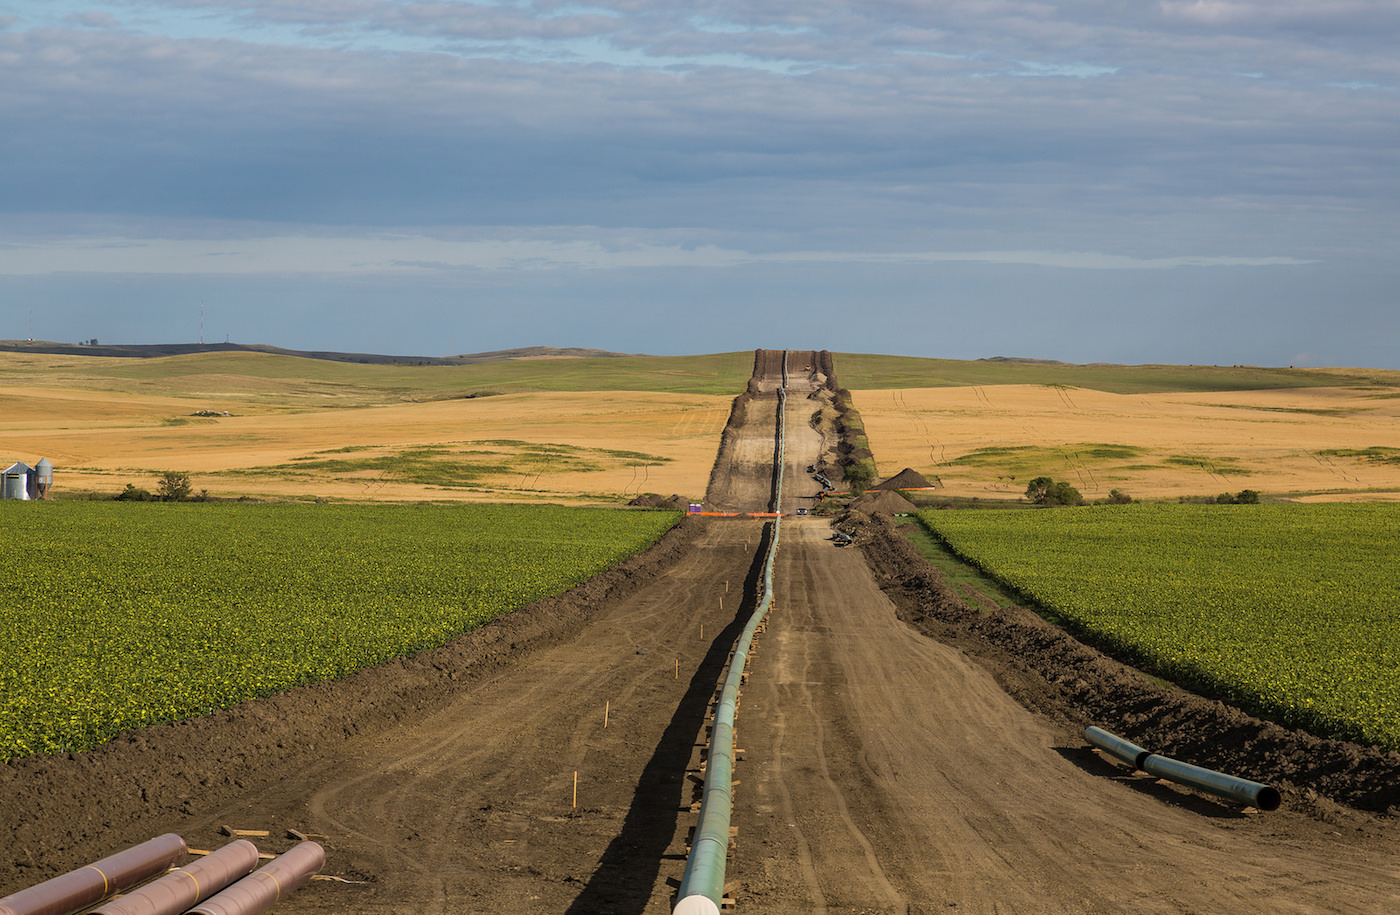 The Dakota Access Pipeline under construction in August, as seen in New Salem, North Dakota (photo by Tony Webster/Flickr)